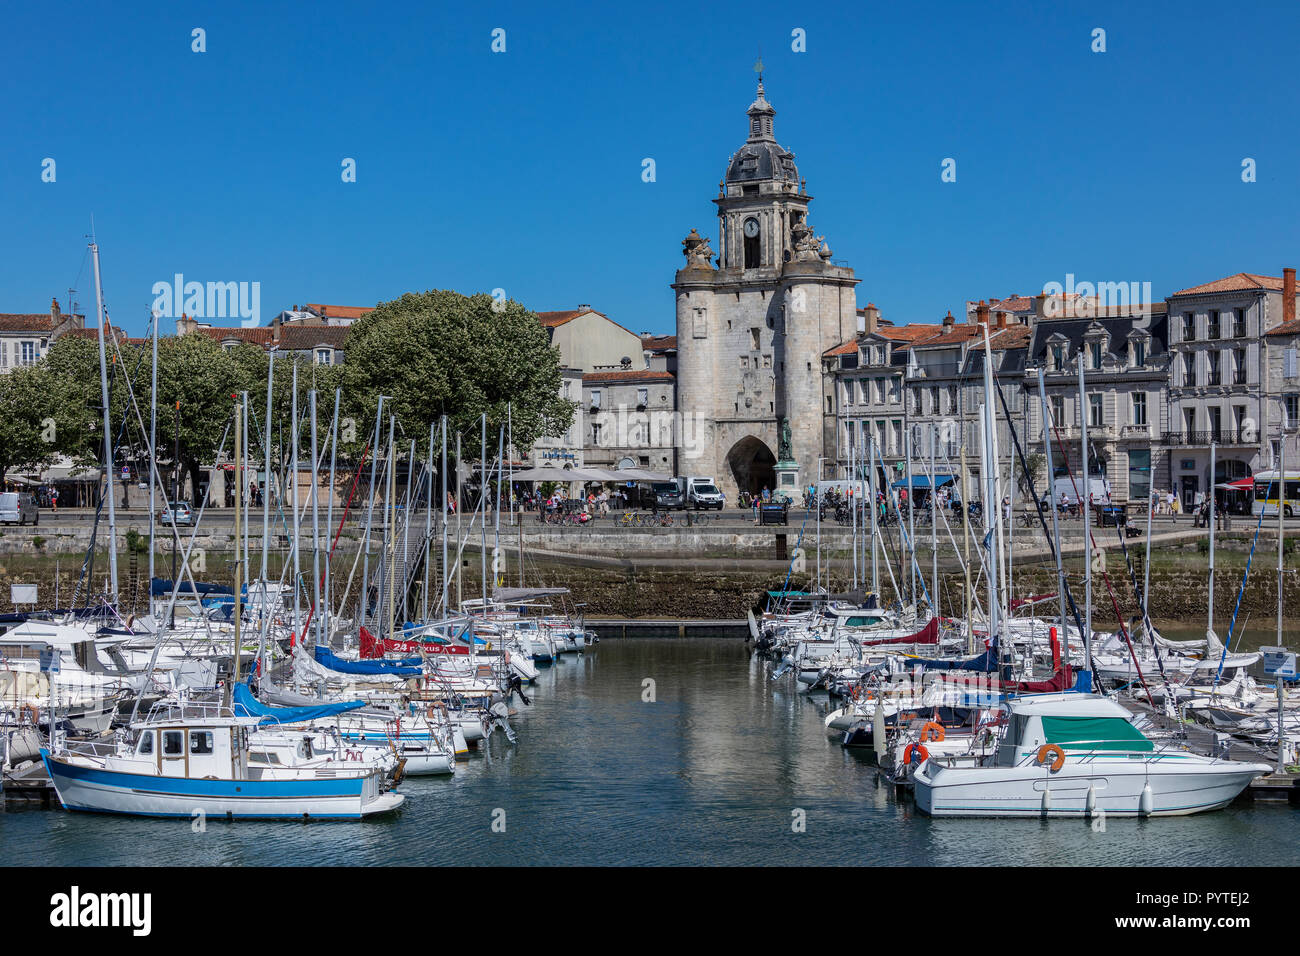 Grosse Horloge Gate in the Vieux Port of La Rochelle in the Charente-Maritime region of France. Stock Photo